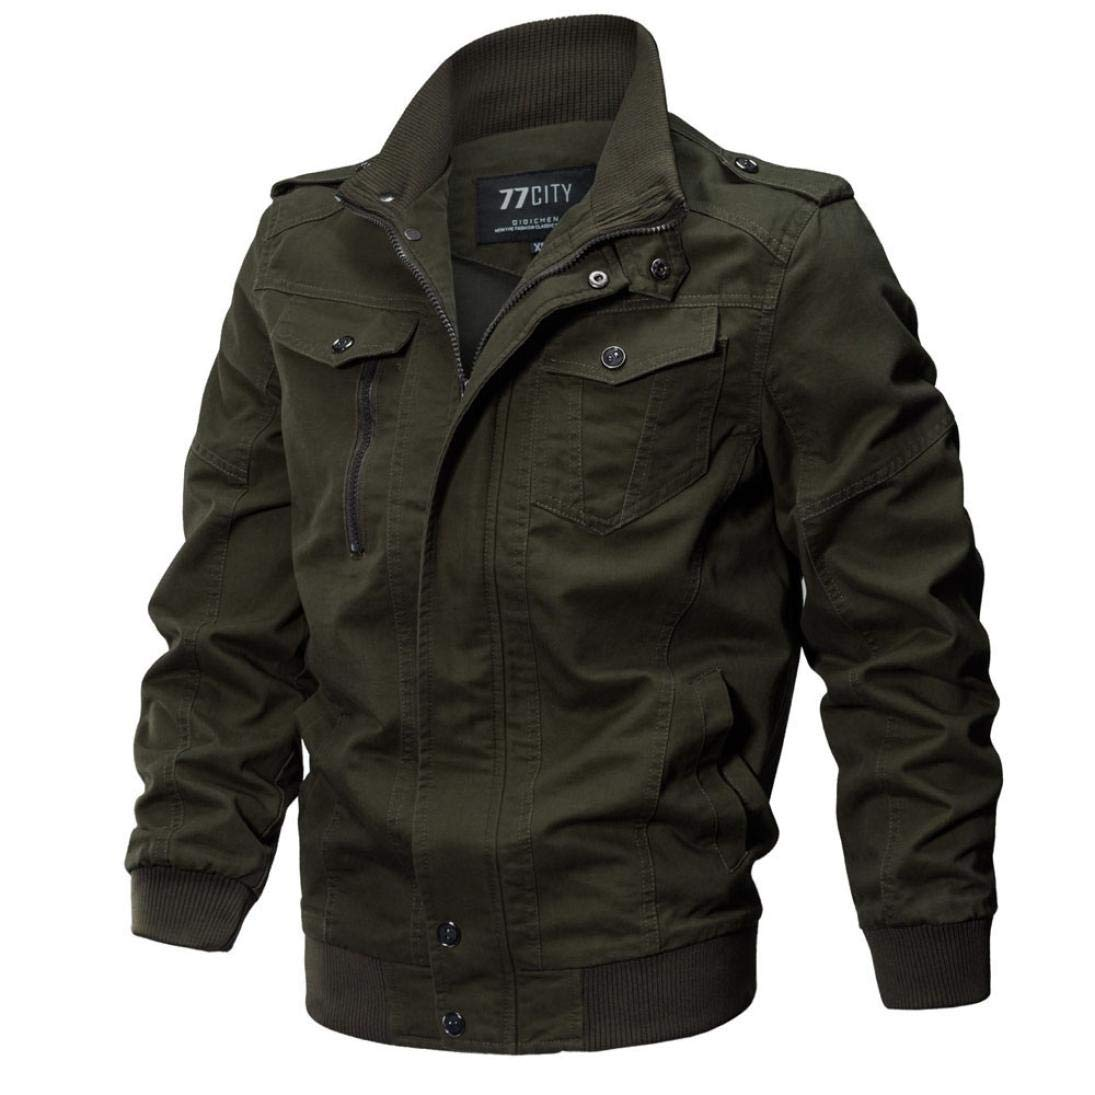 iZHH Mens Jacket Coat Military Clothing Outerwear Cotton Breathable Light